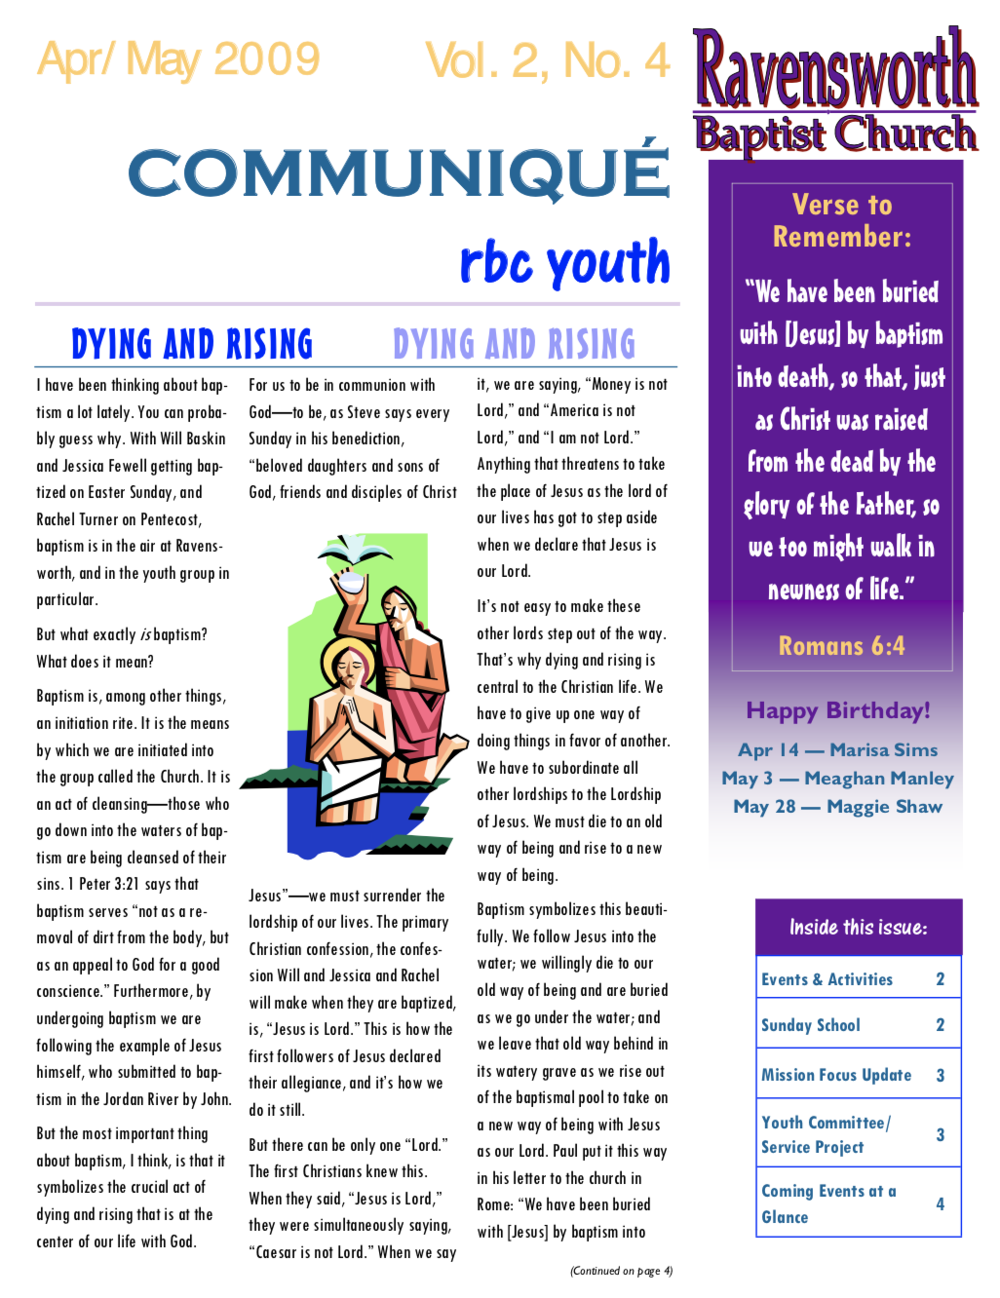 Ravensworth Baptist Church Youth Newsletter, Apr 2009